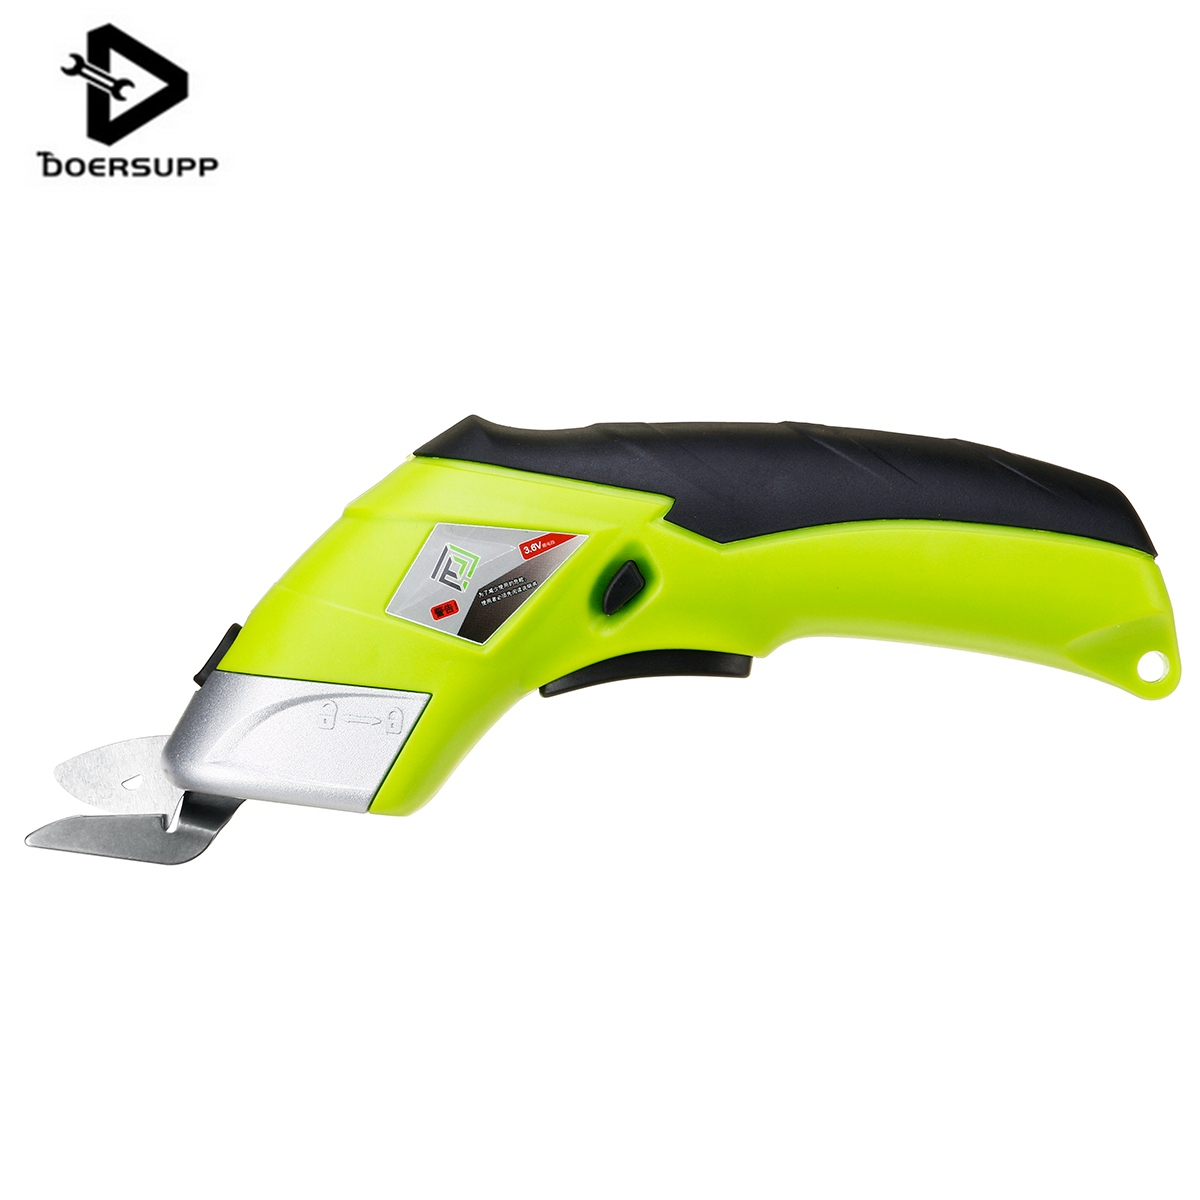 DOERSUPP Multipurpose 110V-220V Electric Scissors Cordless Chargeable Fabric Sewing Scissors Handheld Hand Tools Electric